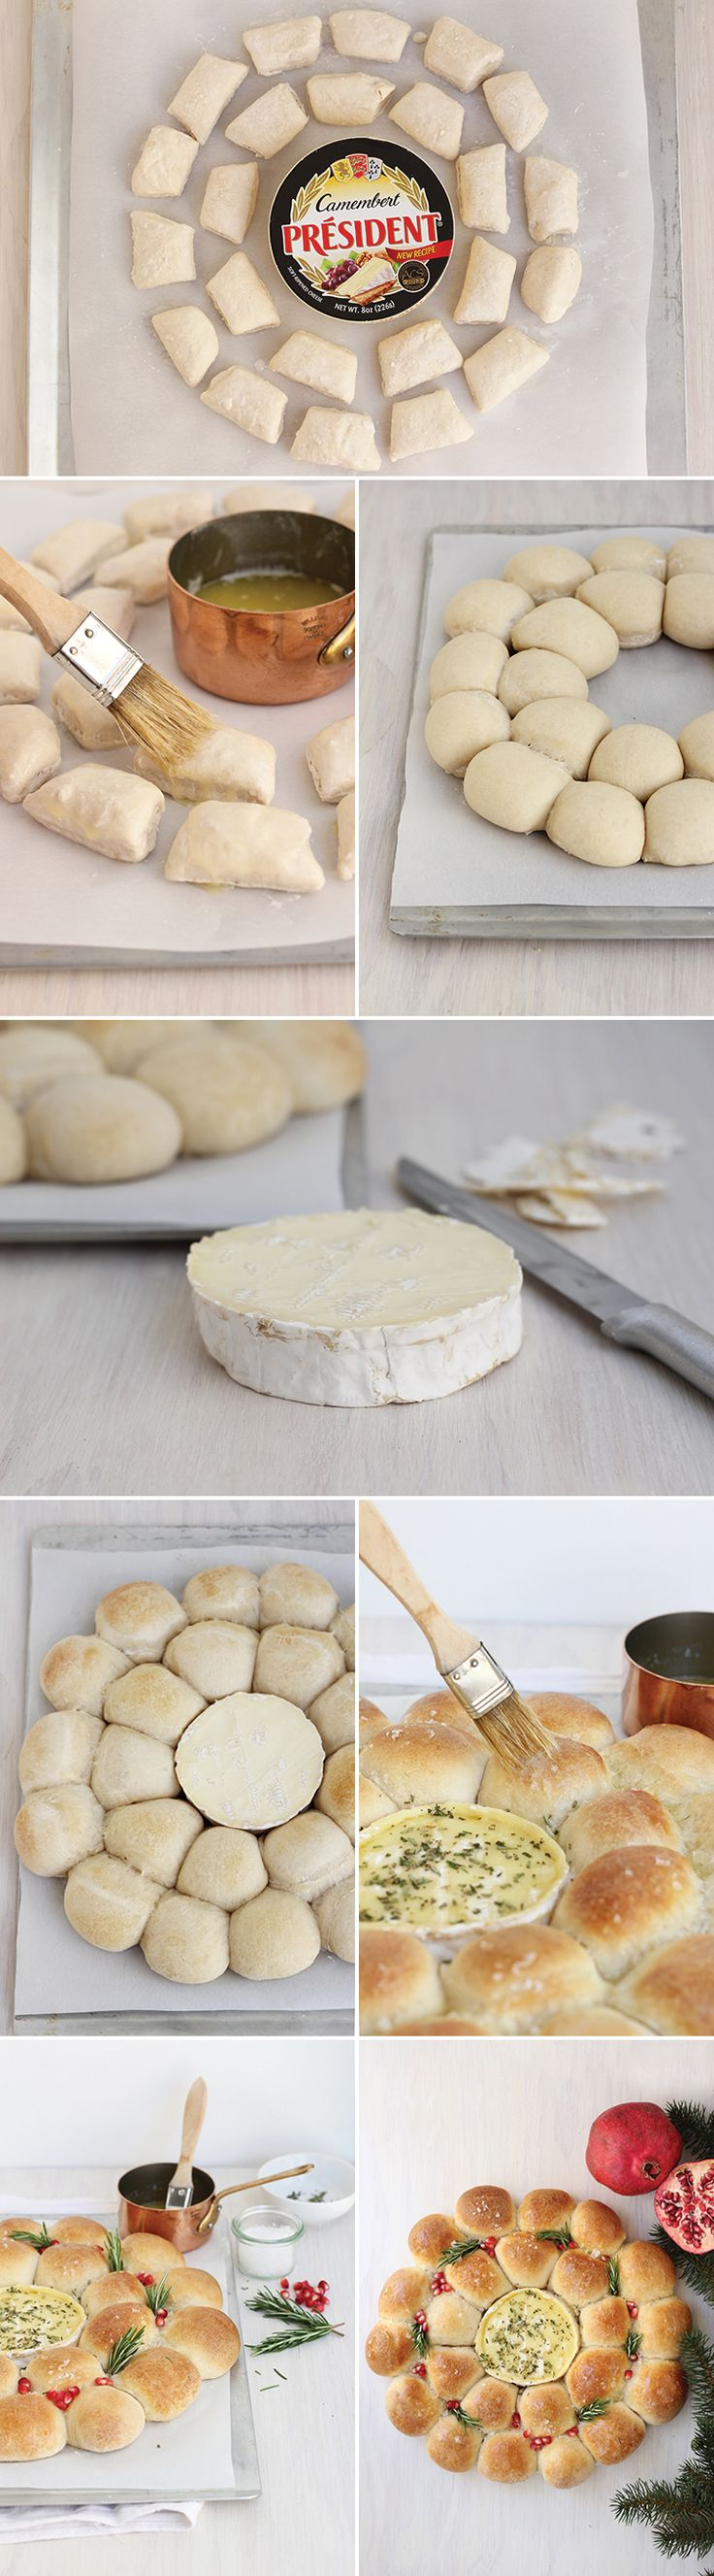 How to assemble a Baked Camembert Bread Wreath! @presidentcheese #ArtofCheese